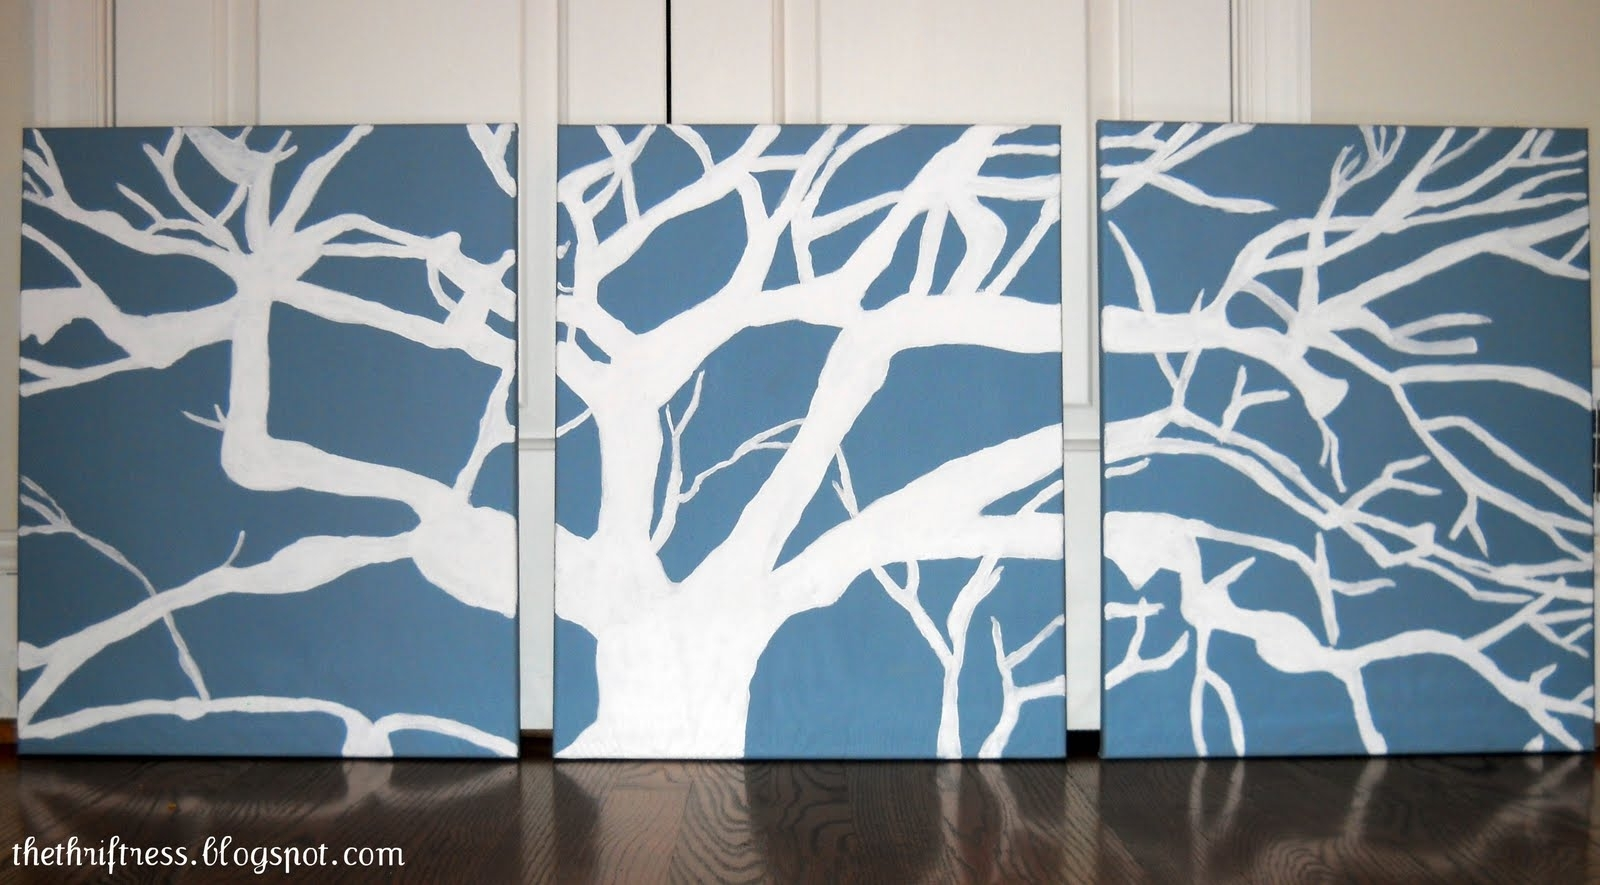 Diy Wall Art Stencils Paint Fabric – Dma Homes | #37854 Throughout Current Modern Fabric Wall Art (View 4 of 15)